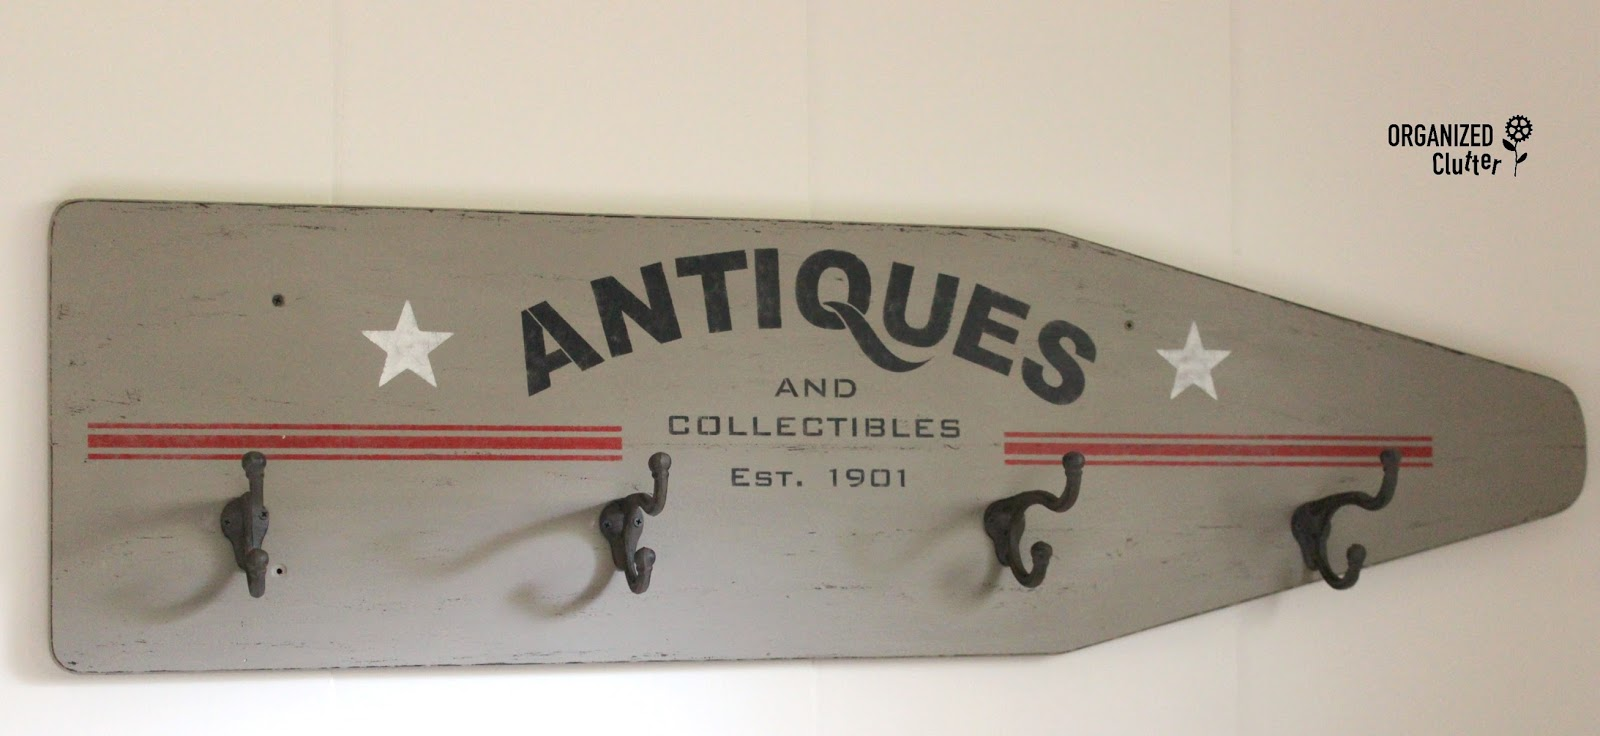 Vintage ironing board coat hook ANTIQUES sign, by Organized Clutter, featured on Funky Junk Interiors